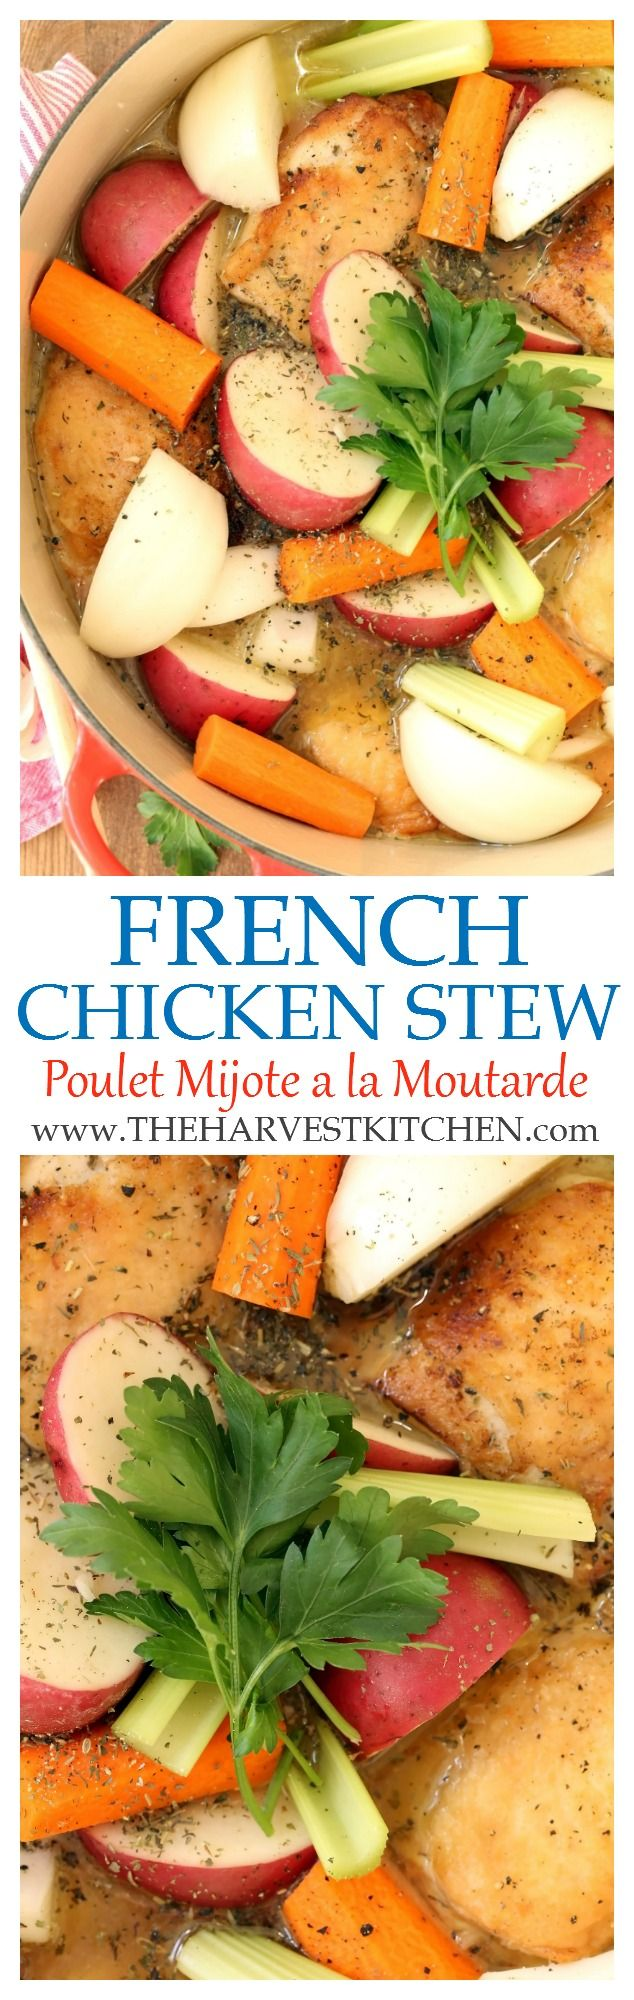 Poulet Mijote a la Moutarde is a classic French Chicken Stew. It's a quick and easy one-pot meal that you to can pull it together any night of the week.